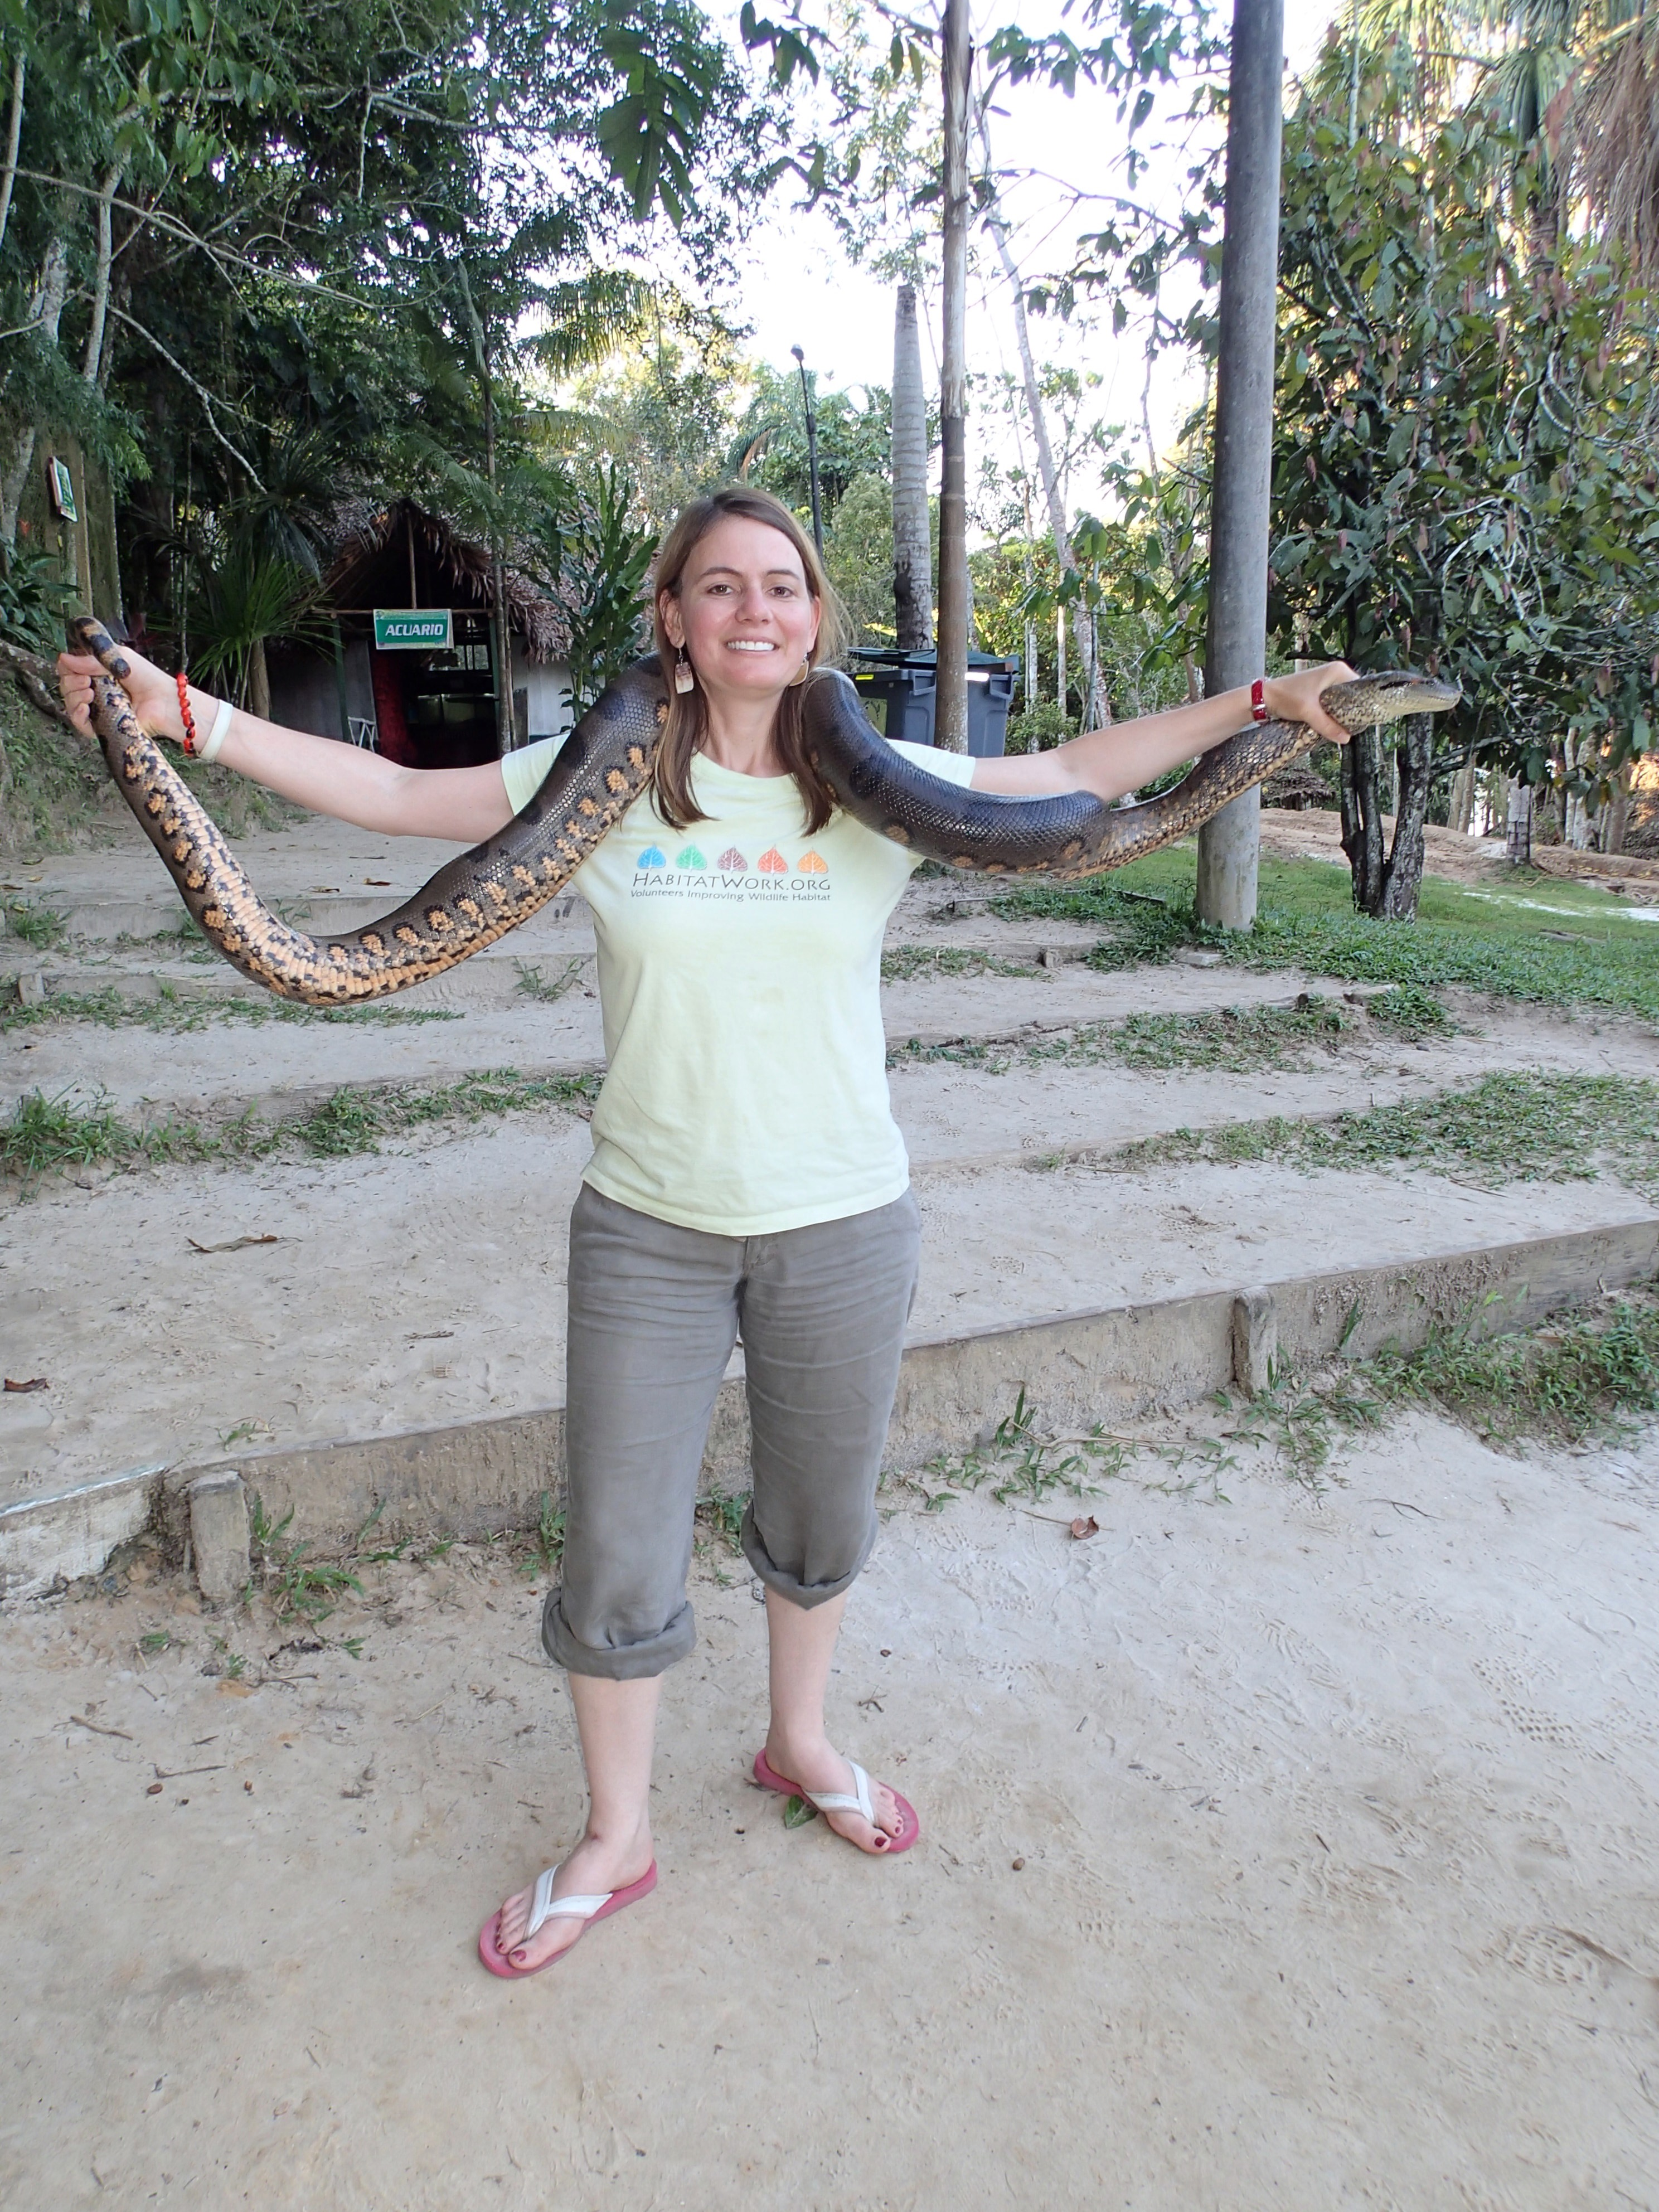 Posing with an Anaconda in the Peruvian Amazon. Credit: Erika Podest